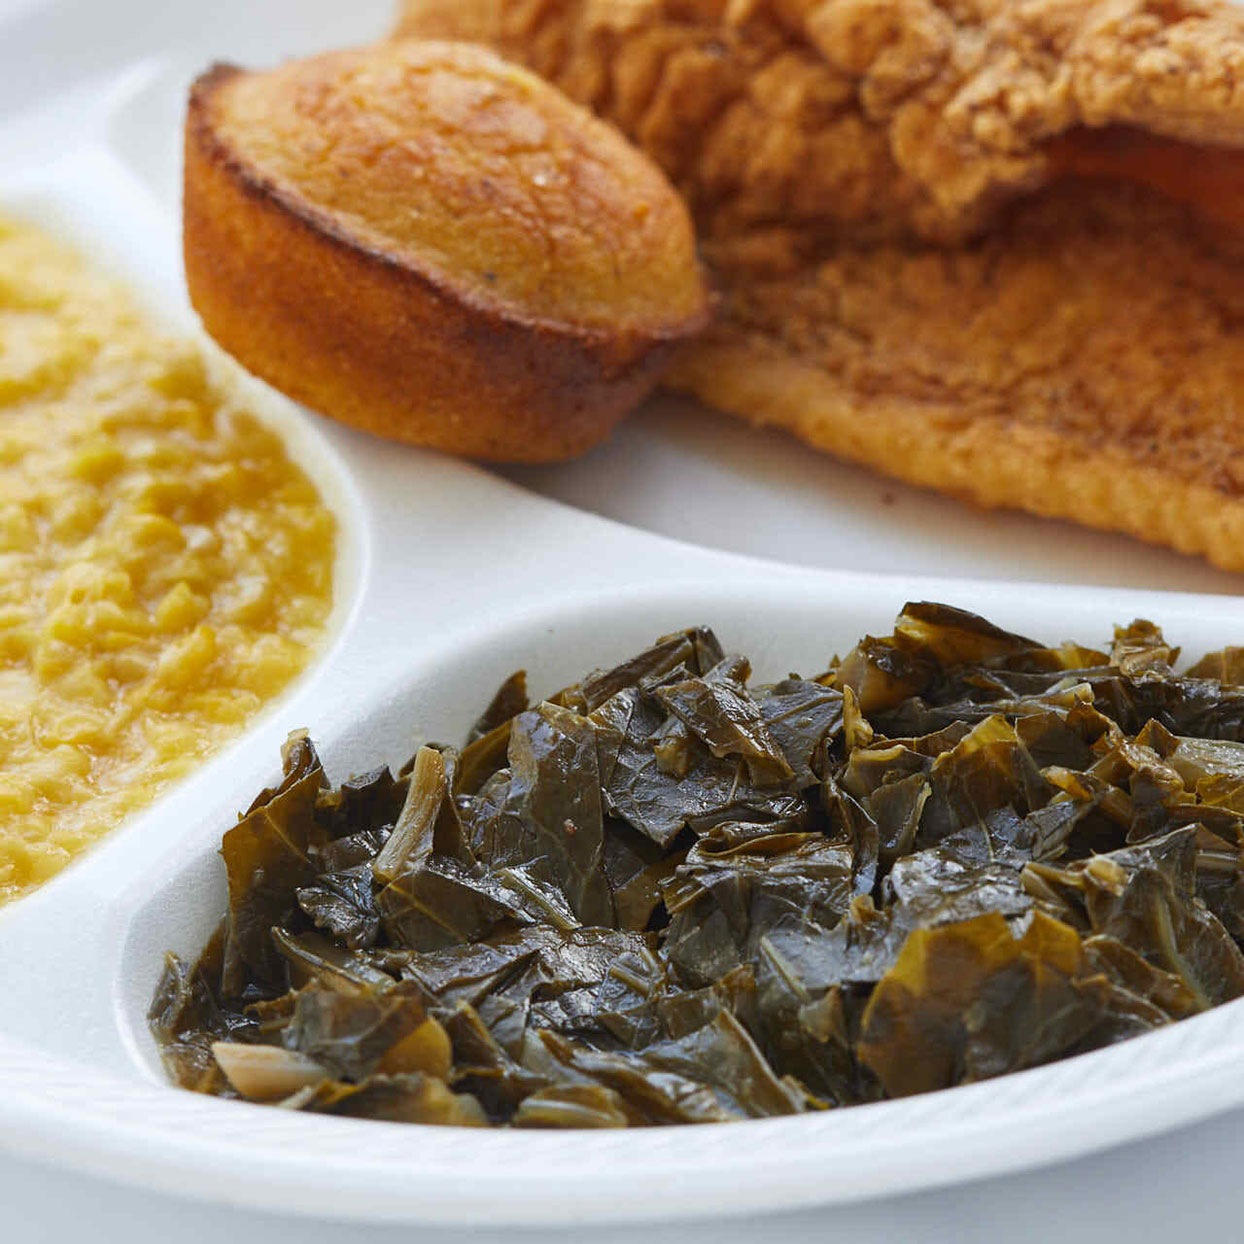 collard greens with ham hocks in a serving platter